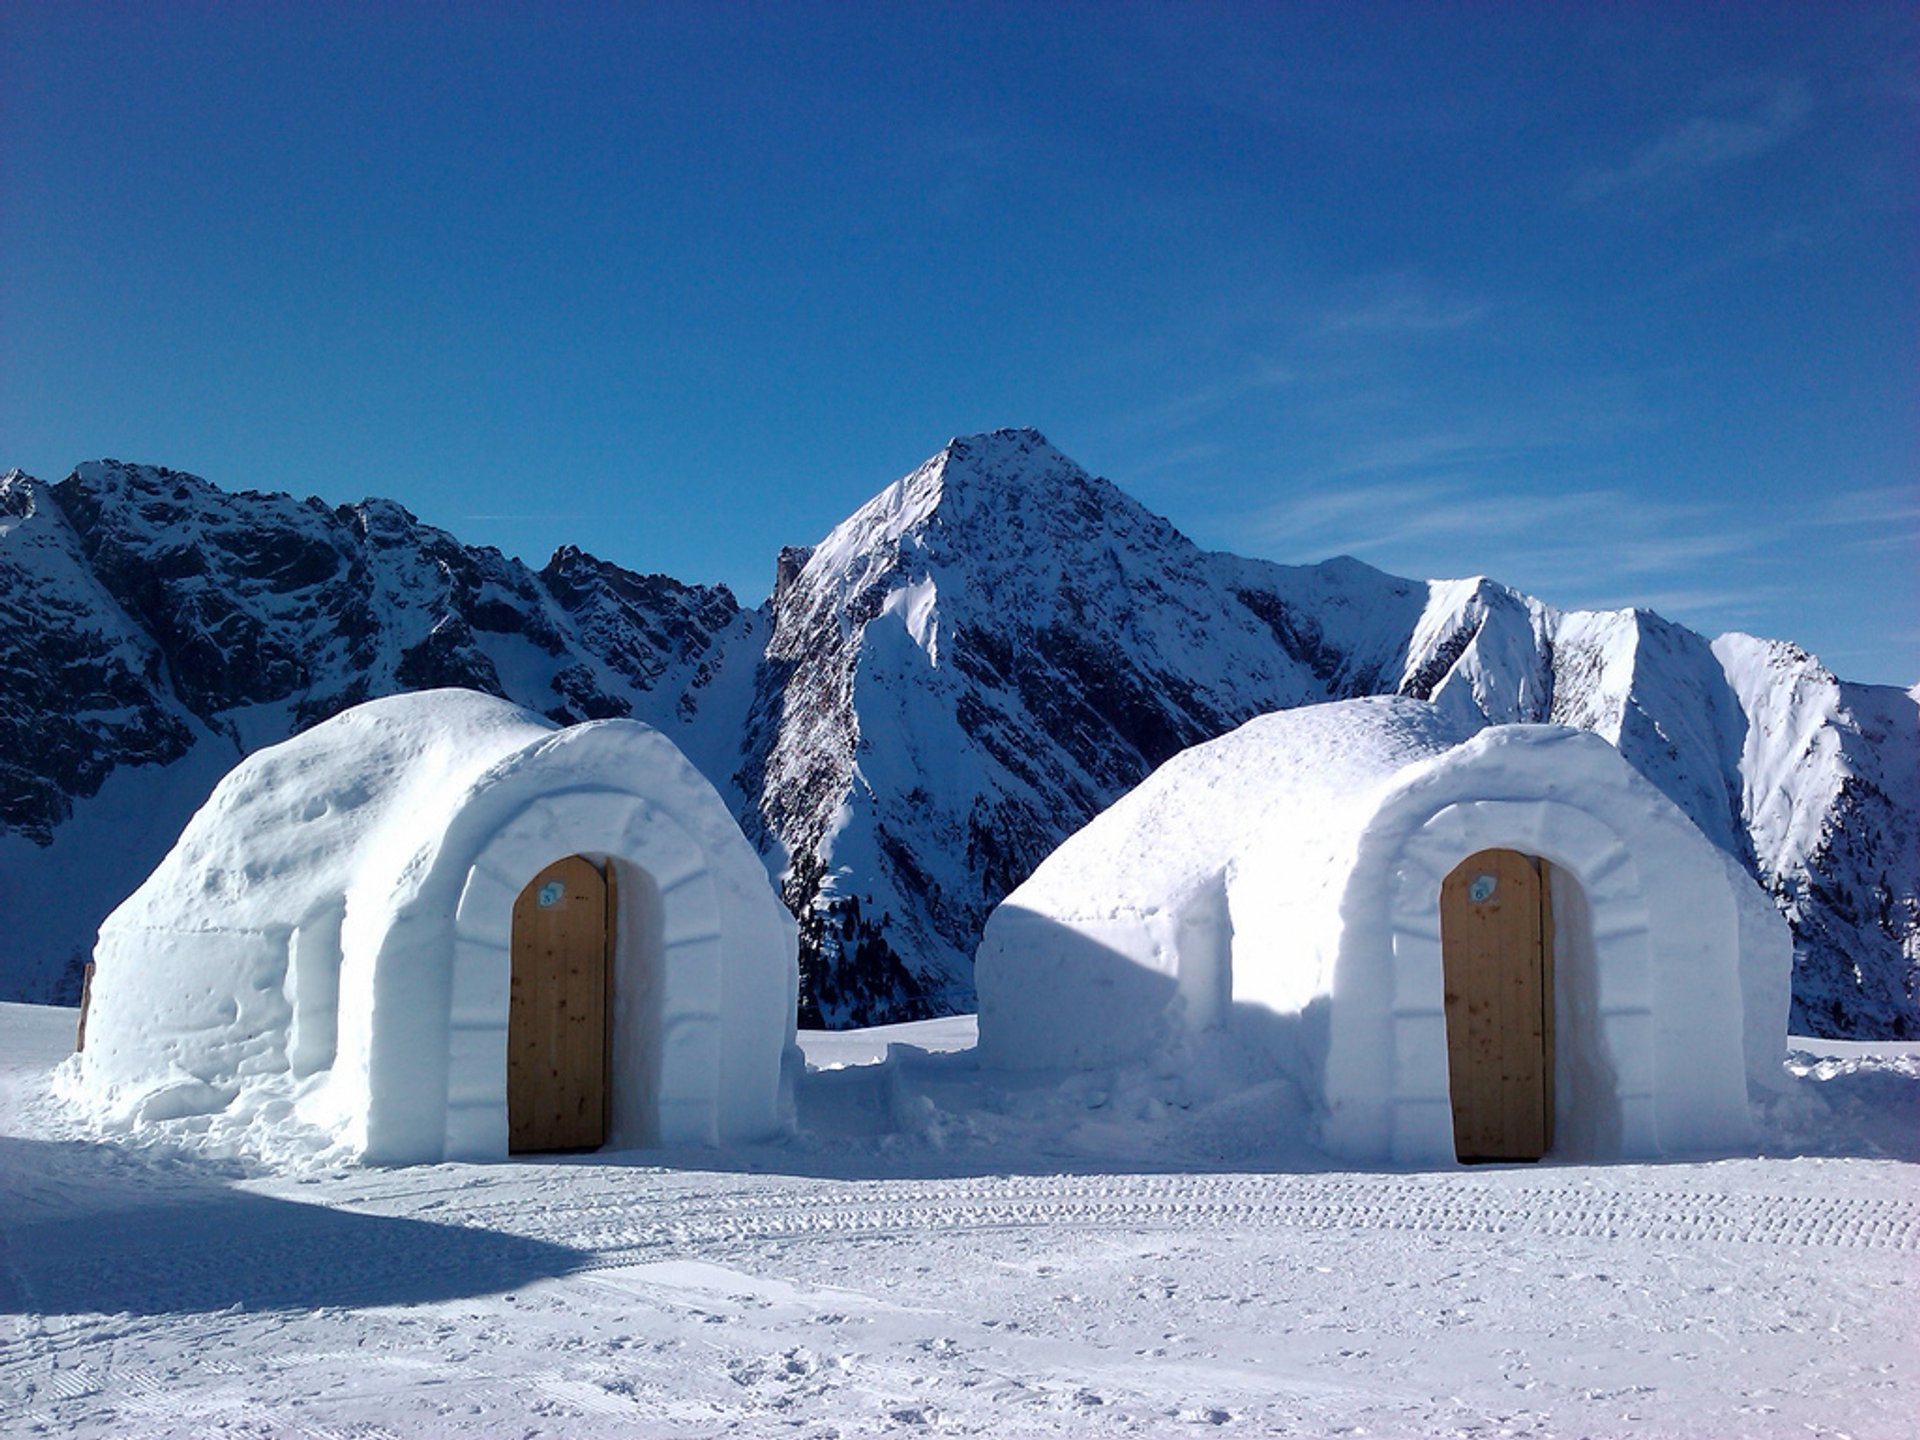 Igloo Building in Austria 2020 - Best Time